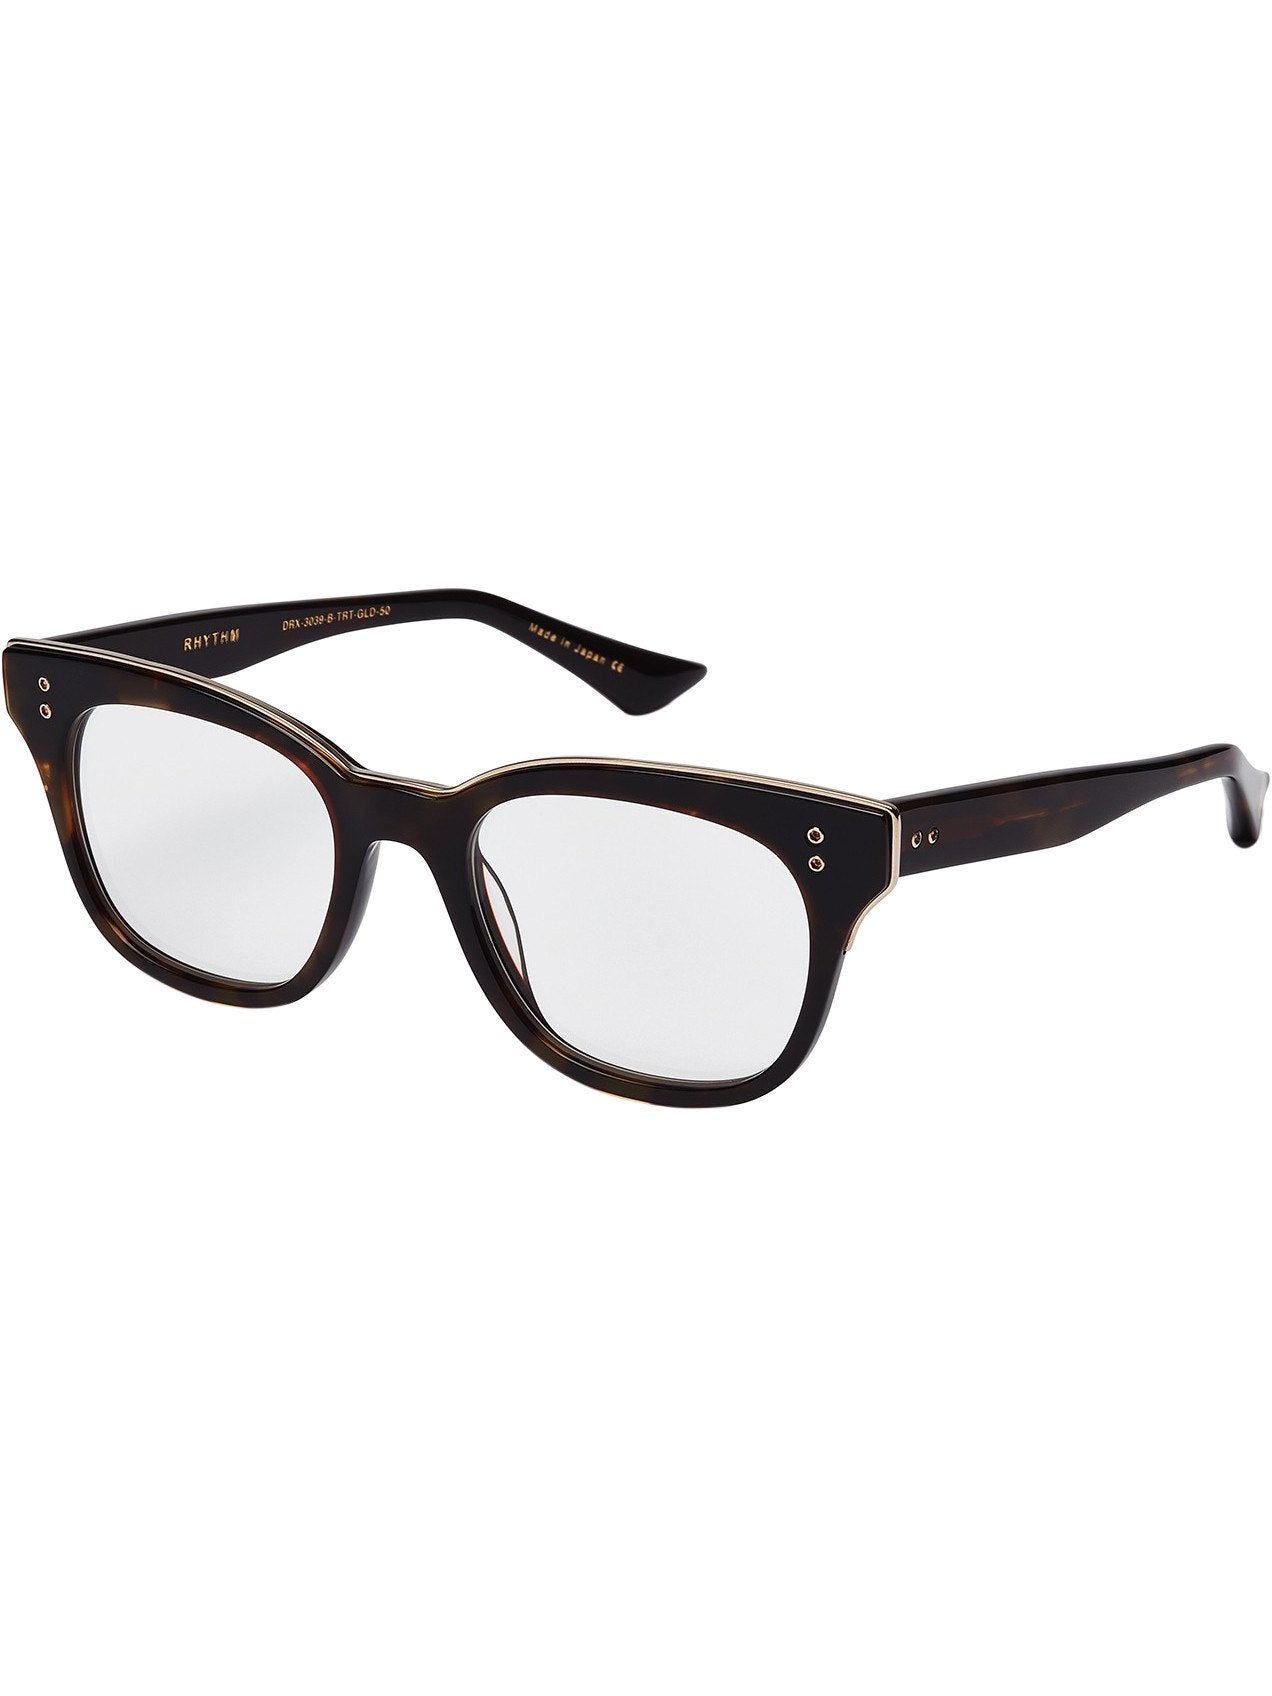 2444114f14c Optical Frame - Dita Rhythm DRX-3039-B Glasses